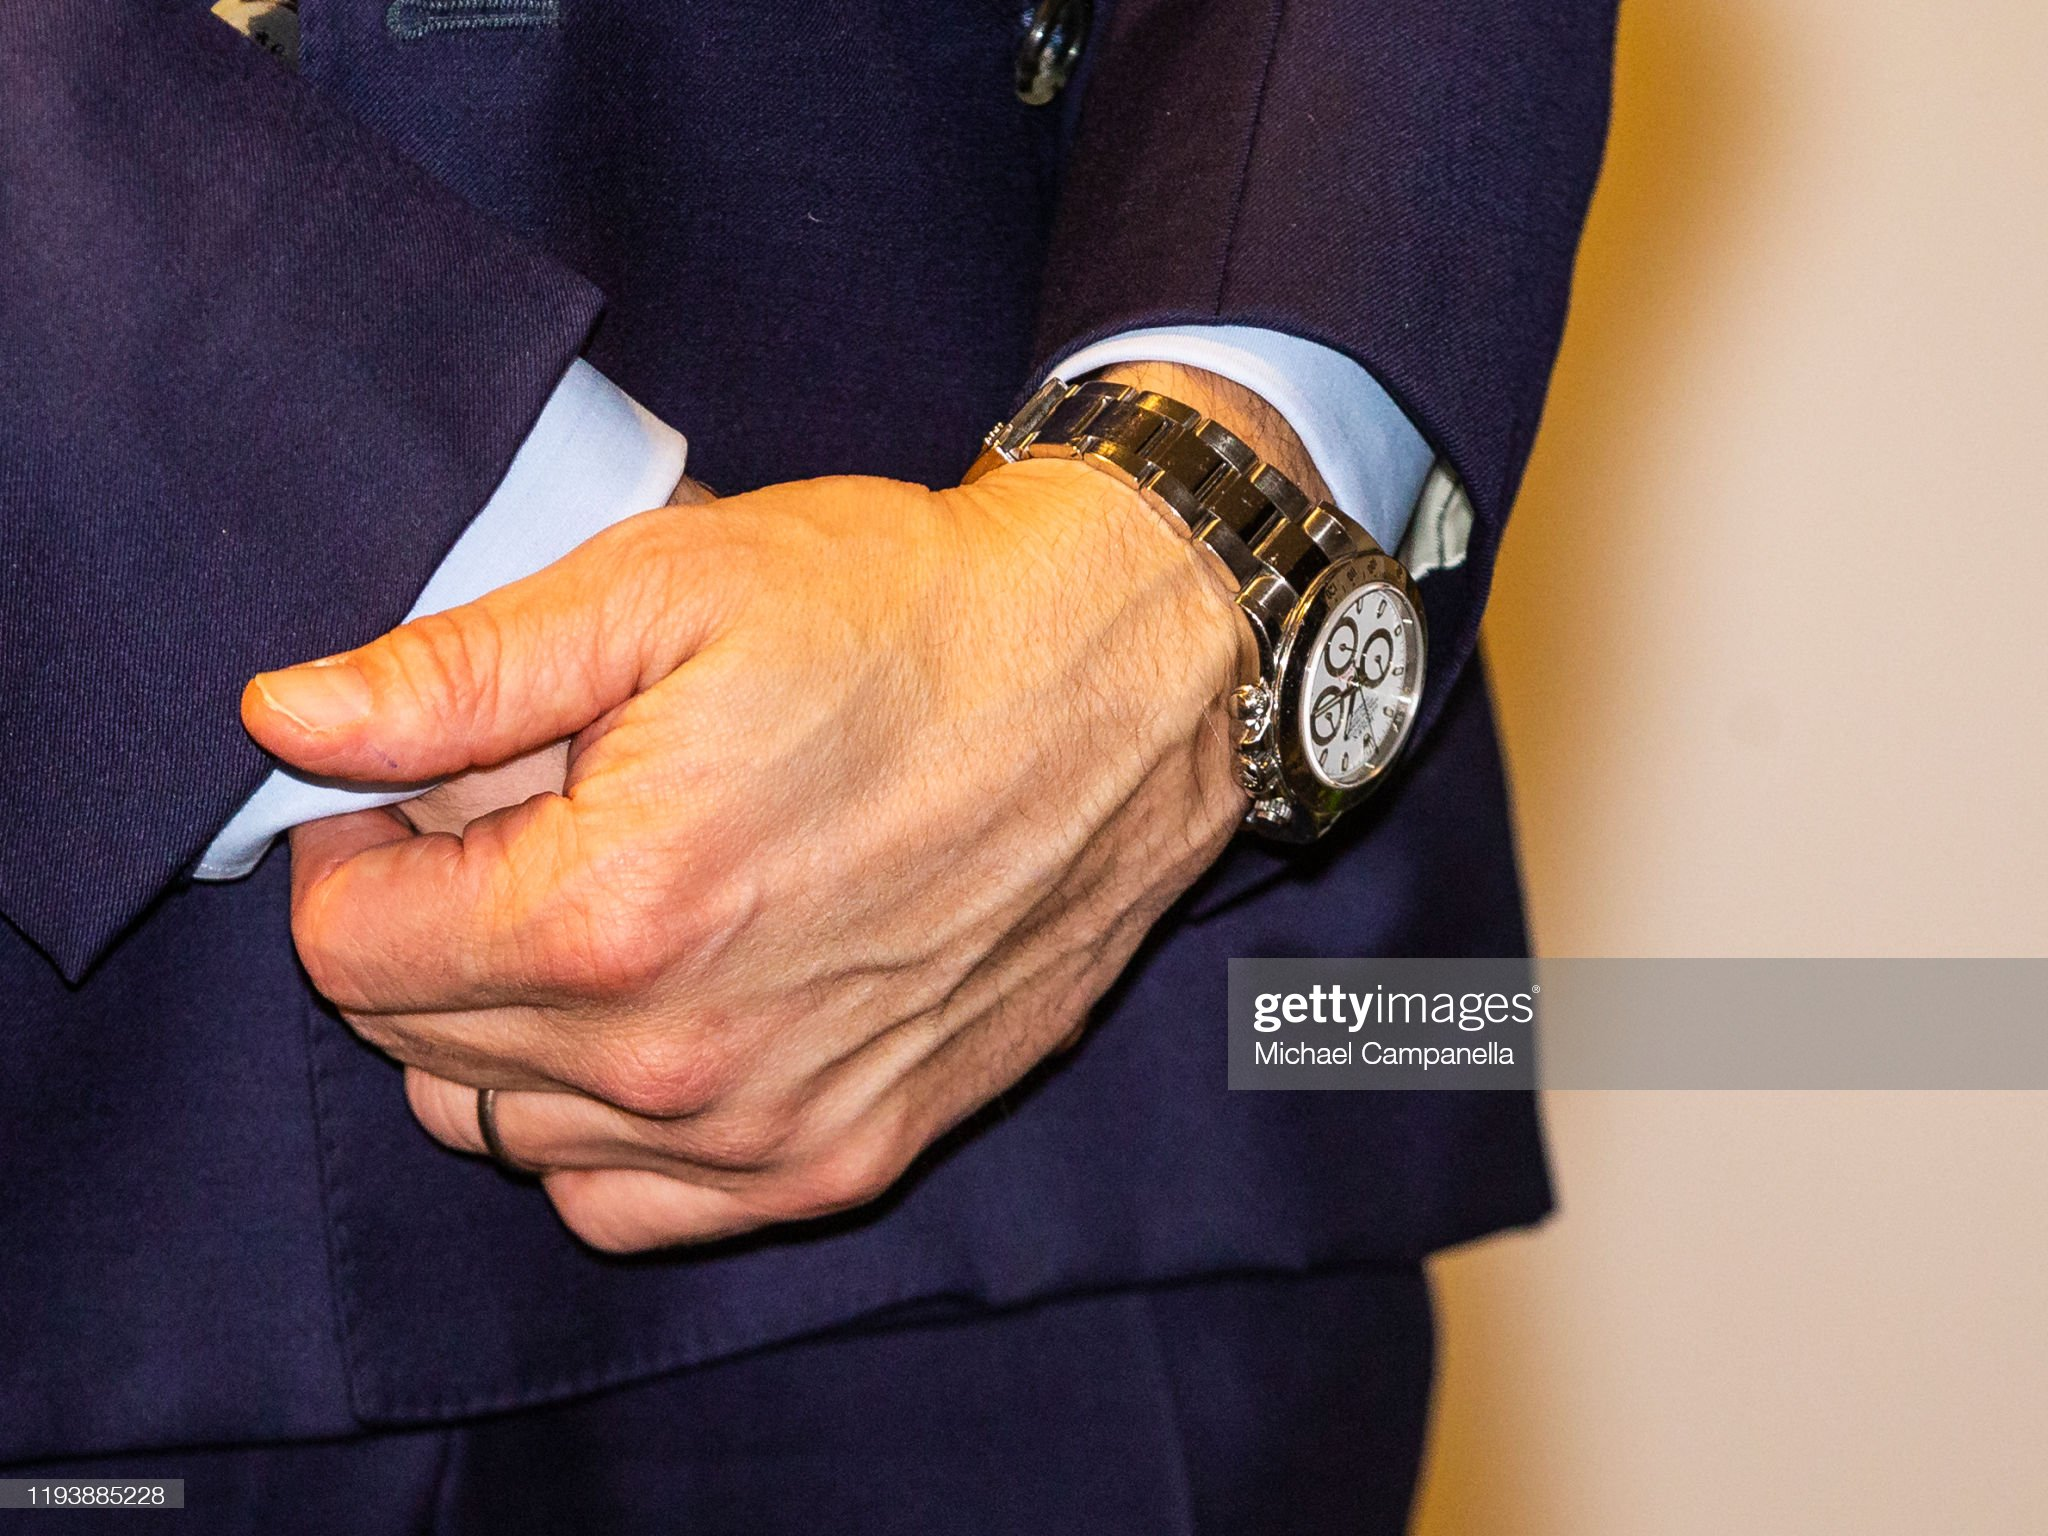 watch-worn-by-prince-daniel-of-sweden-while-visiting-the-swedish-for-picture-id1193885228